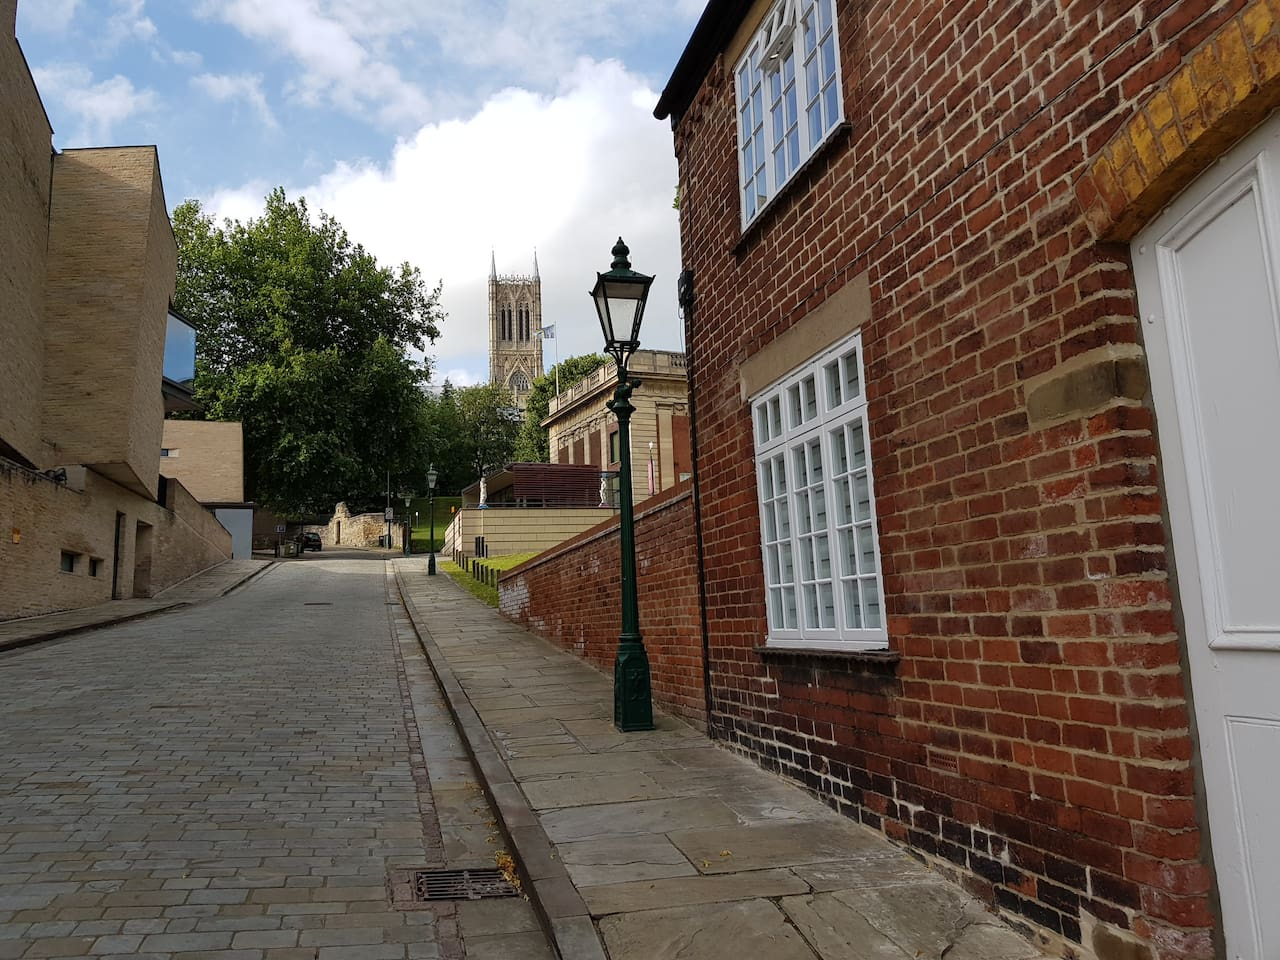 View to Lincoln Cathedral, The Collection Museum and the Usher Gallery from the front of the ground floor property.